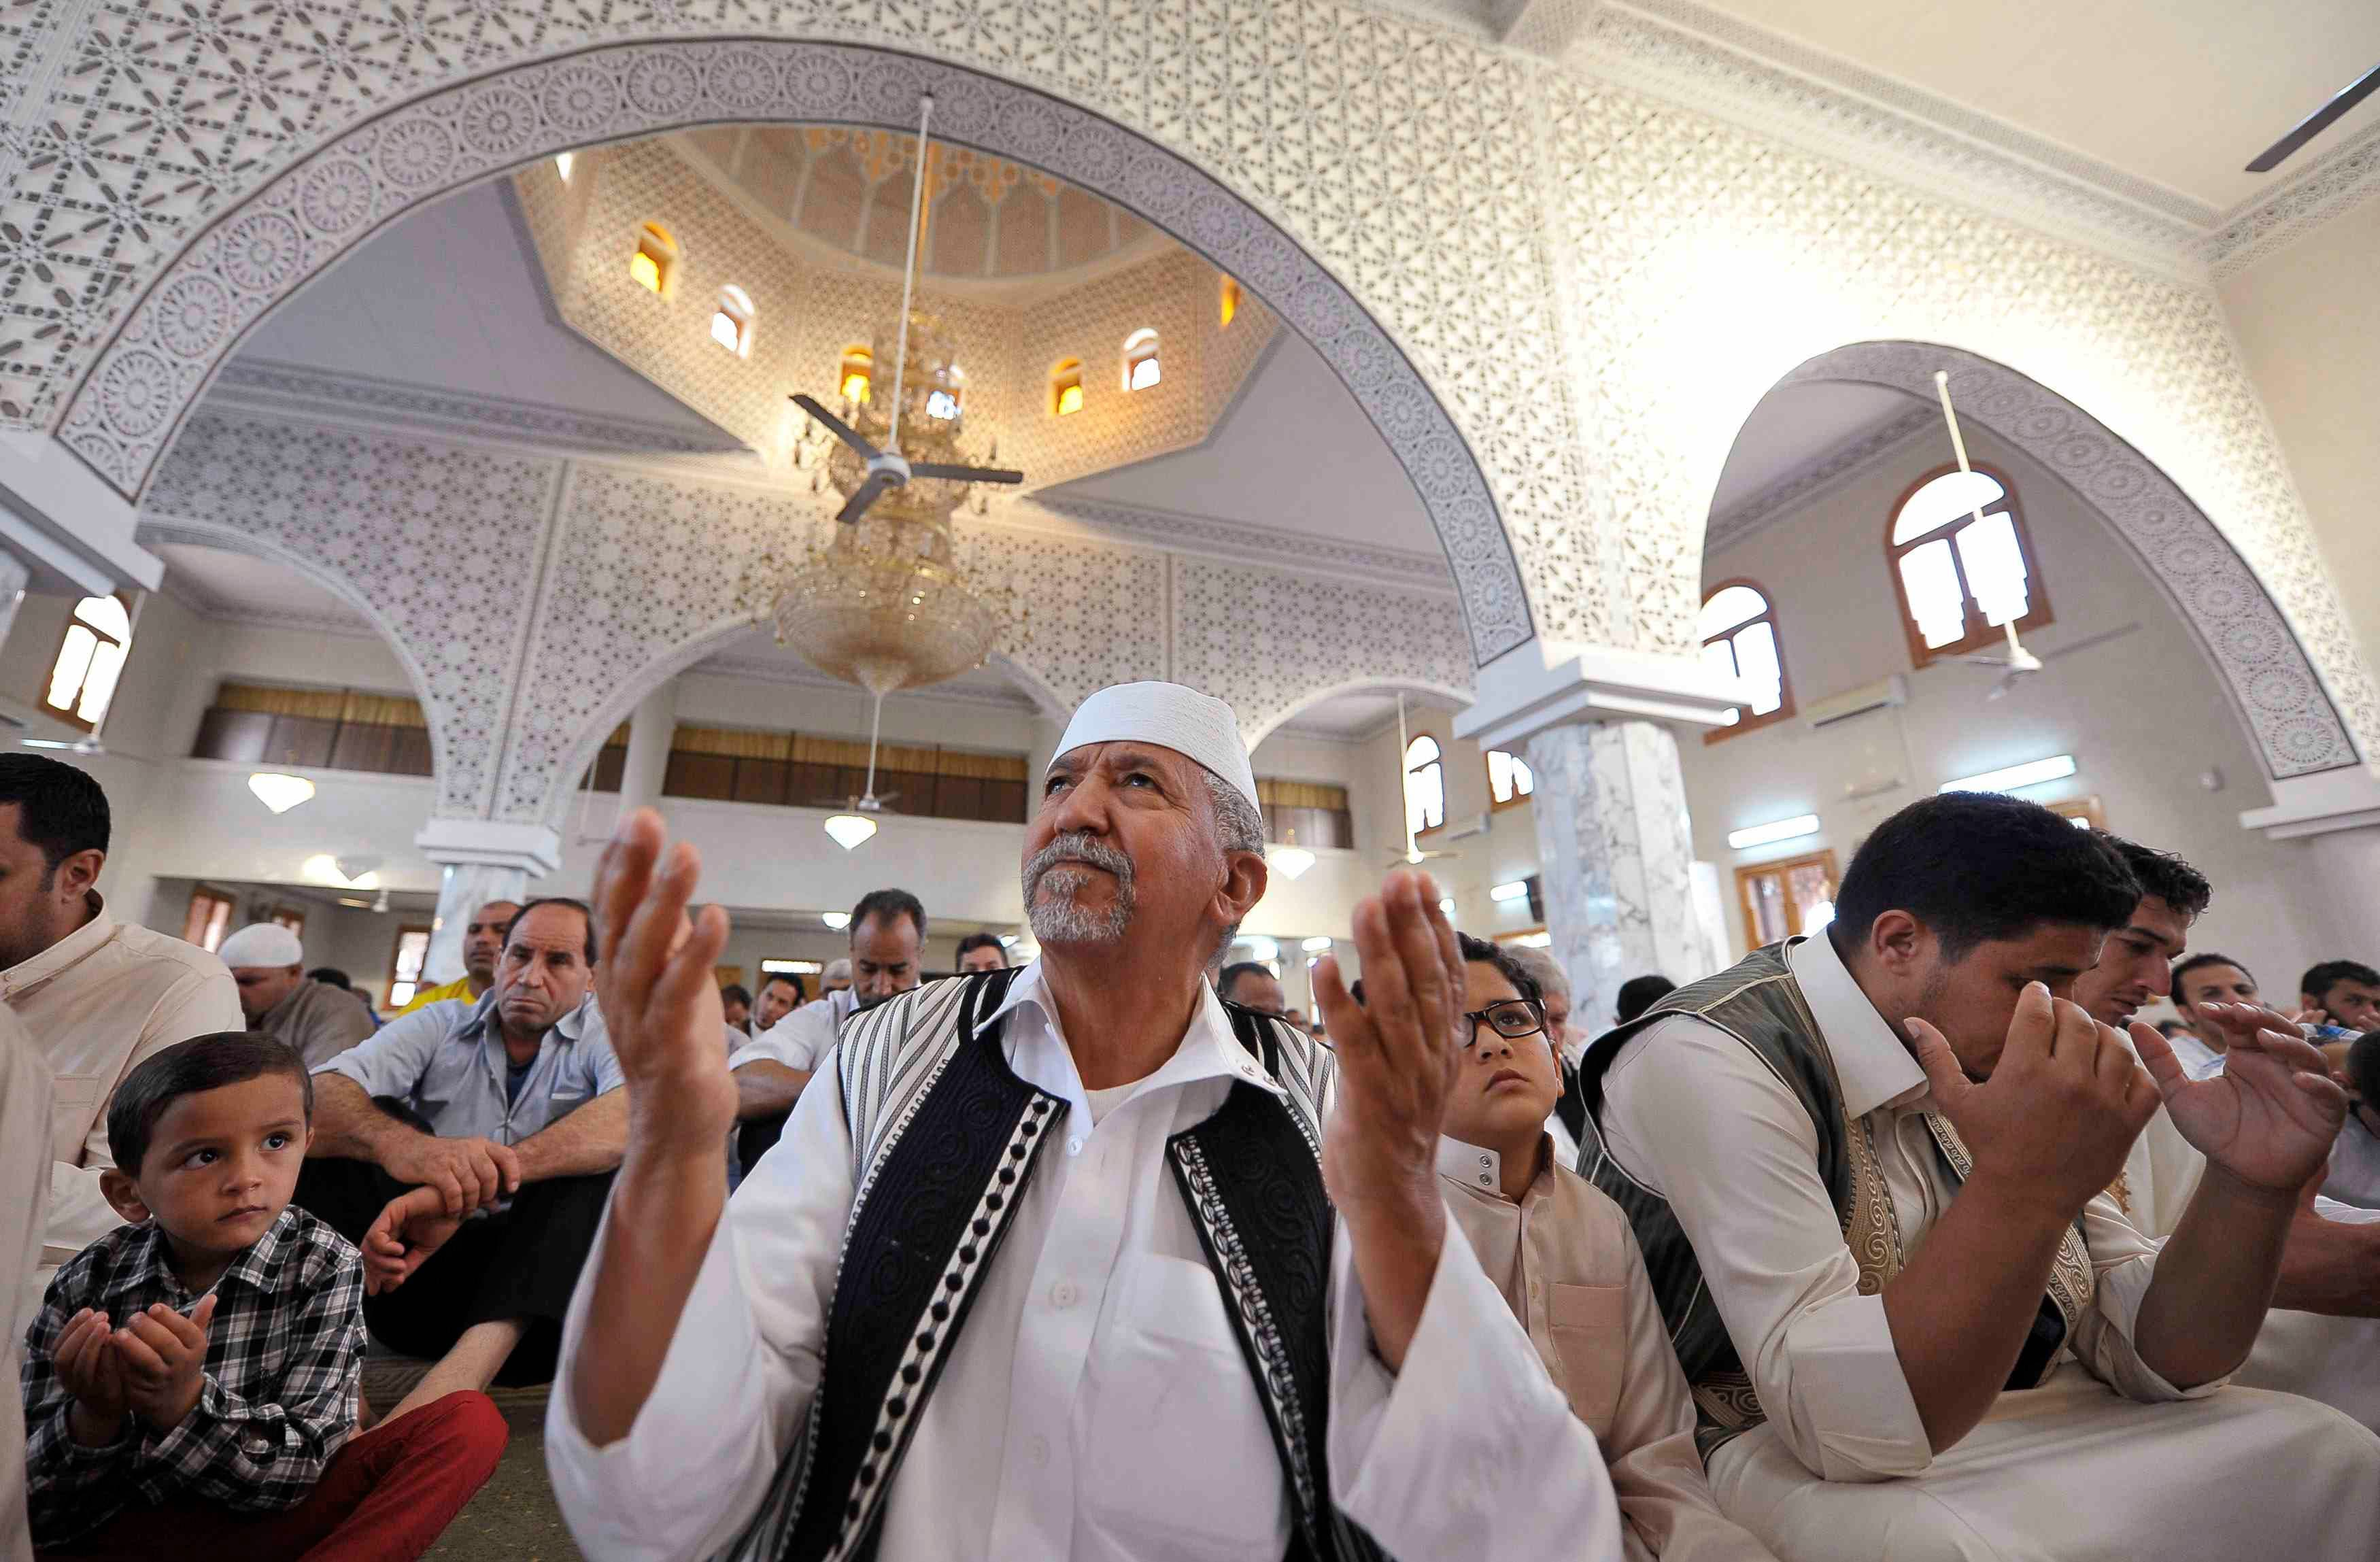 LIBYA: Muslims attend Eid al-Adha prayers in Benghazi October 15, 2013. (Reuters)